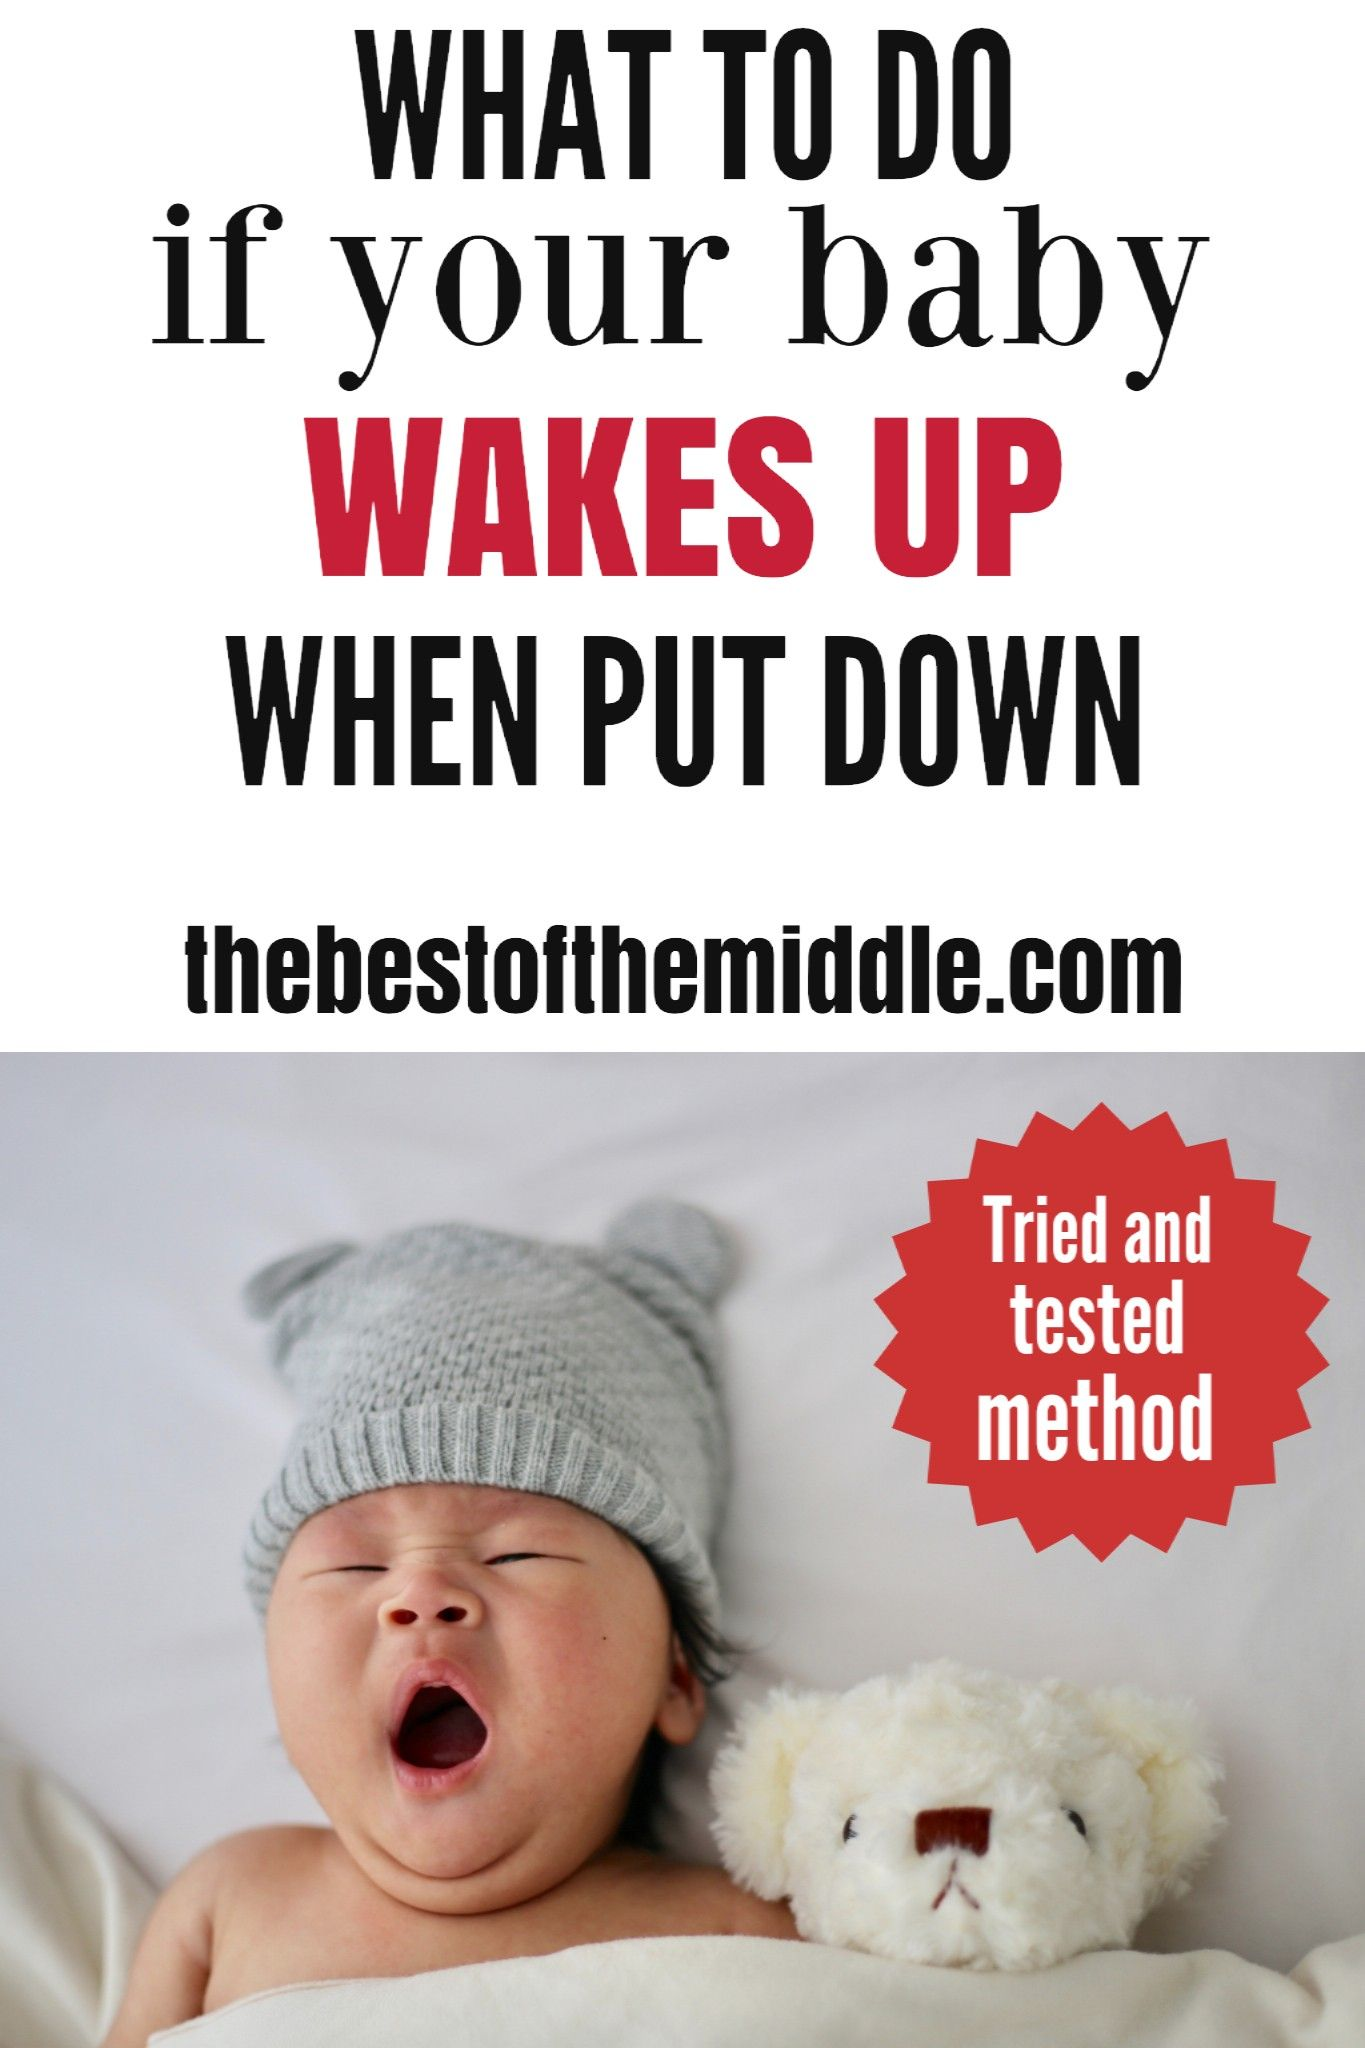 what to do when your baby has to be heldrocked bounced or